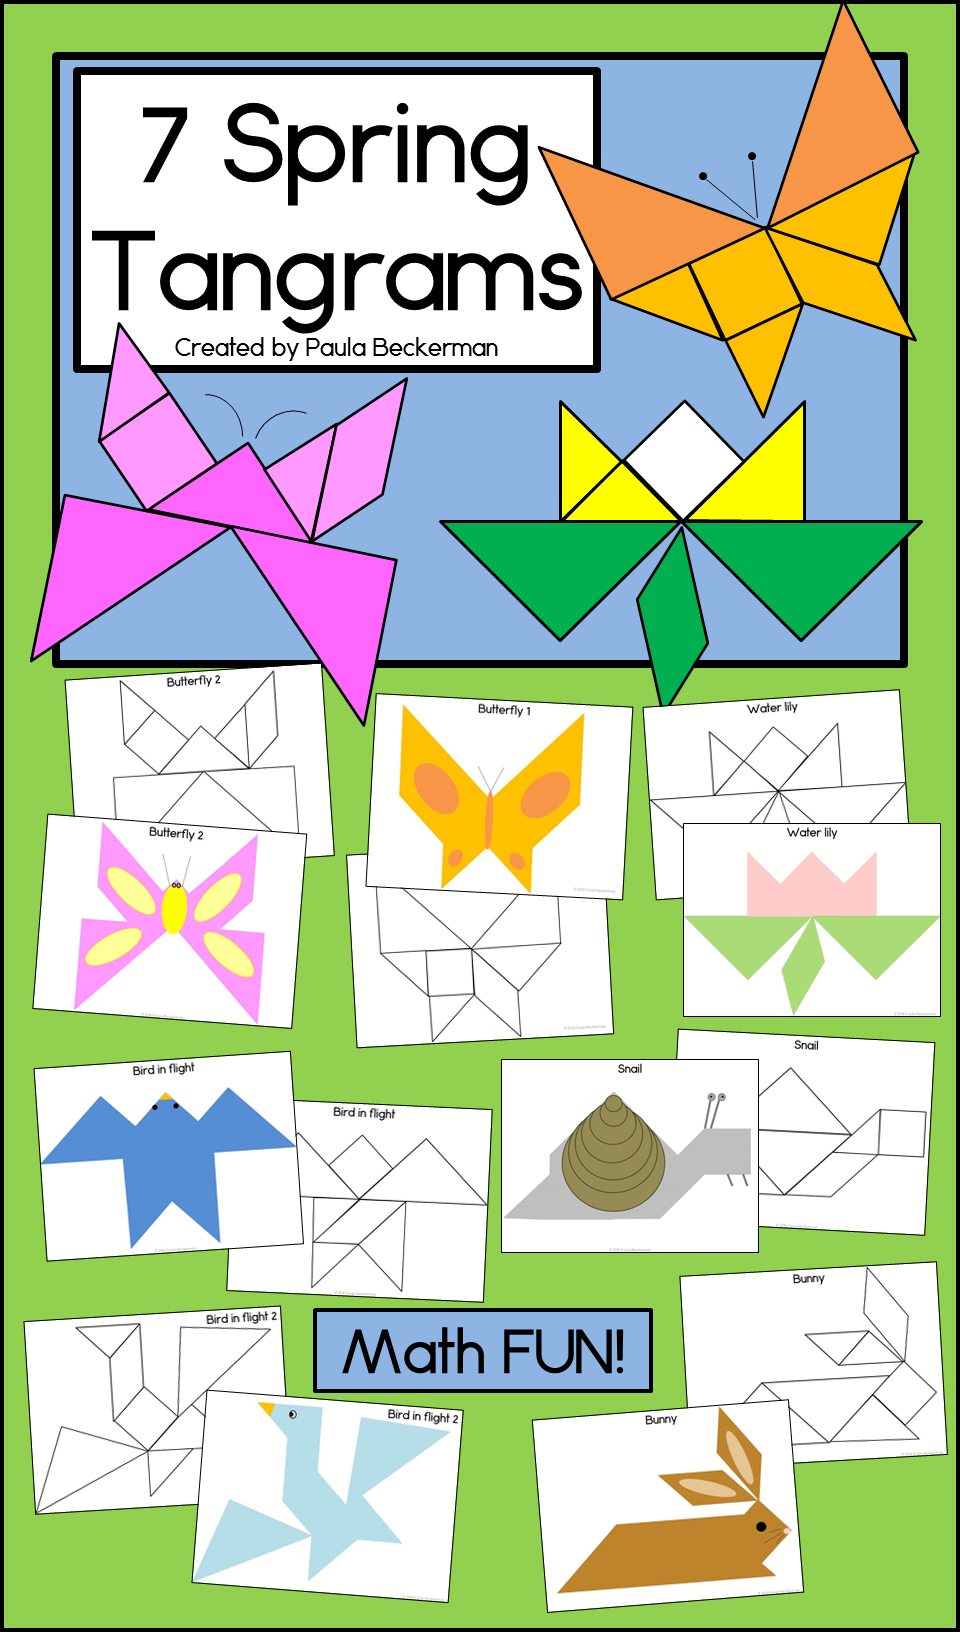 hight resolution of Spring themed tangrams for fun math learning with shapes. Includes 2  butterflies